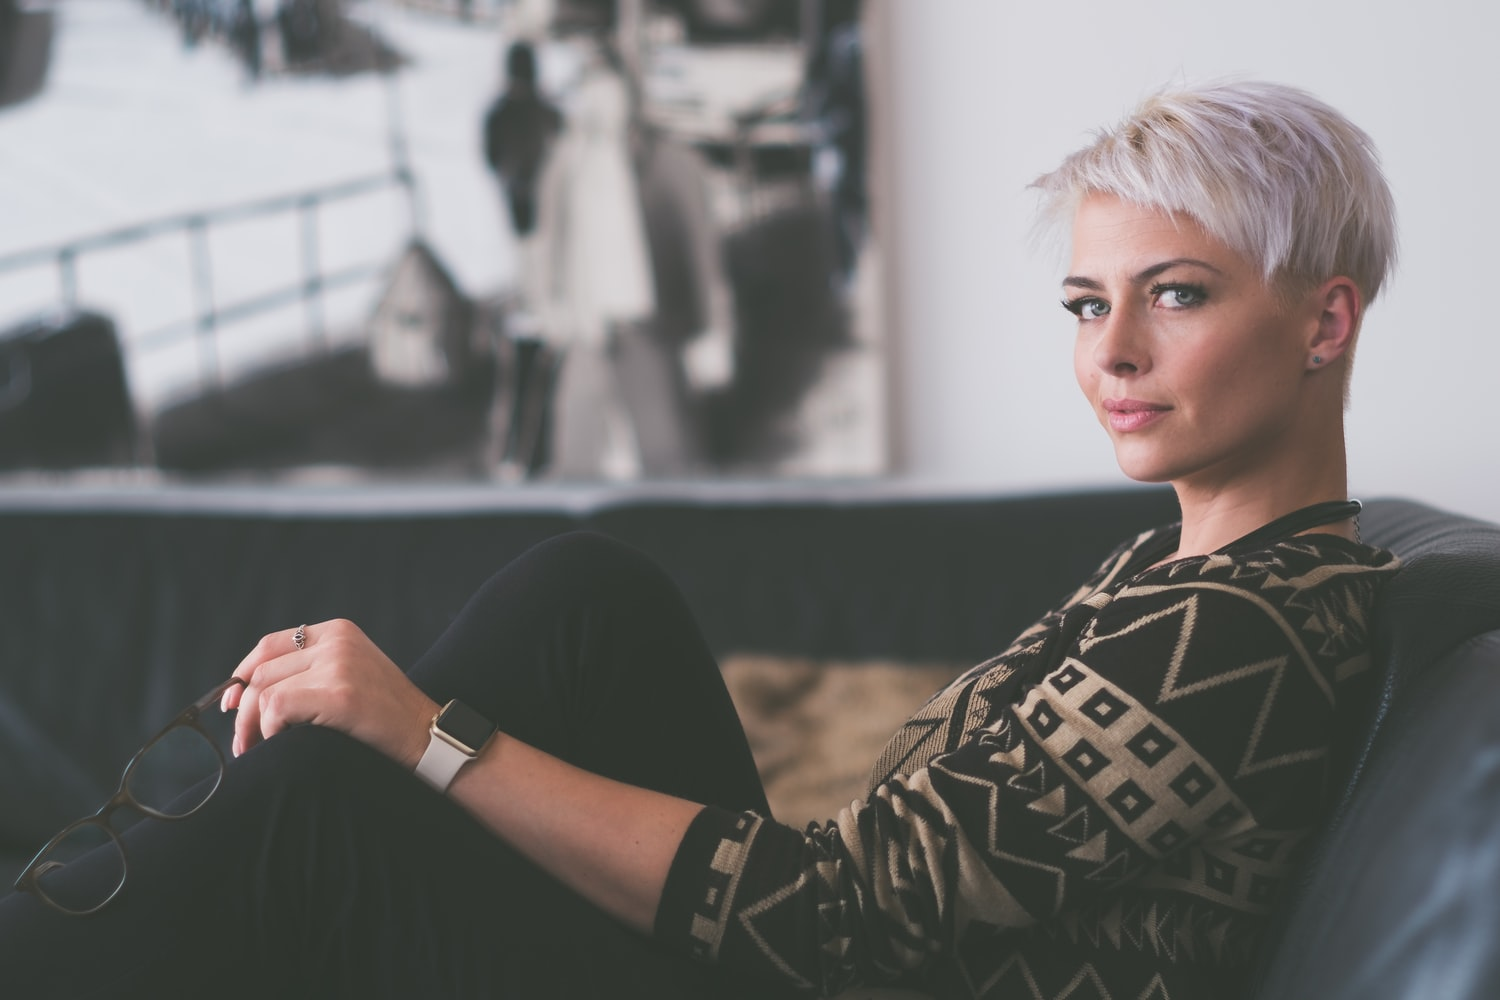 Young woman with white hair sitting on couch